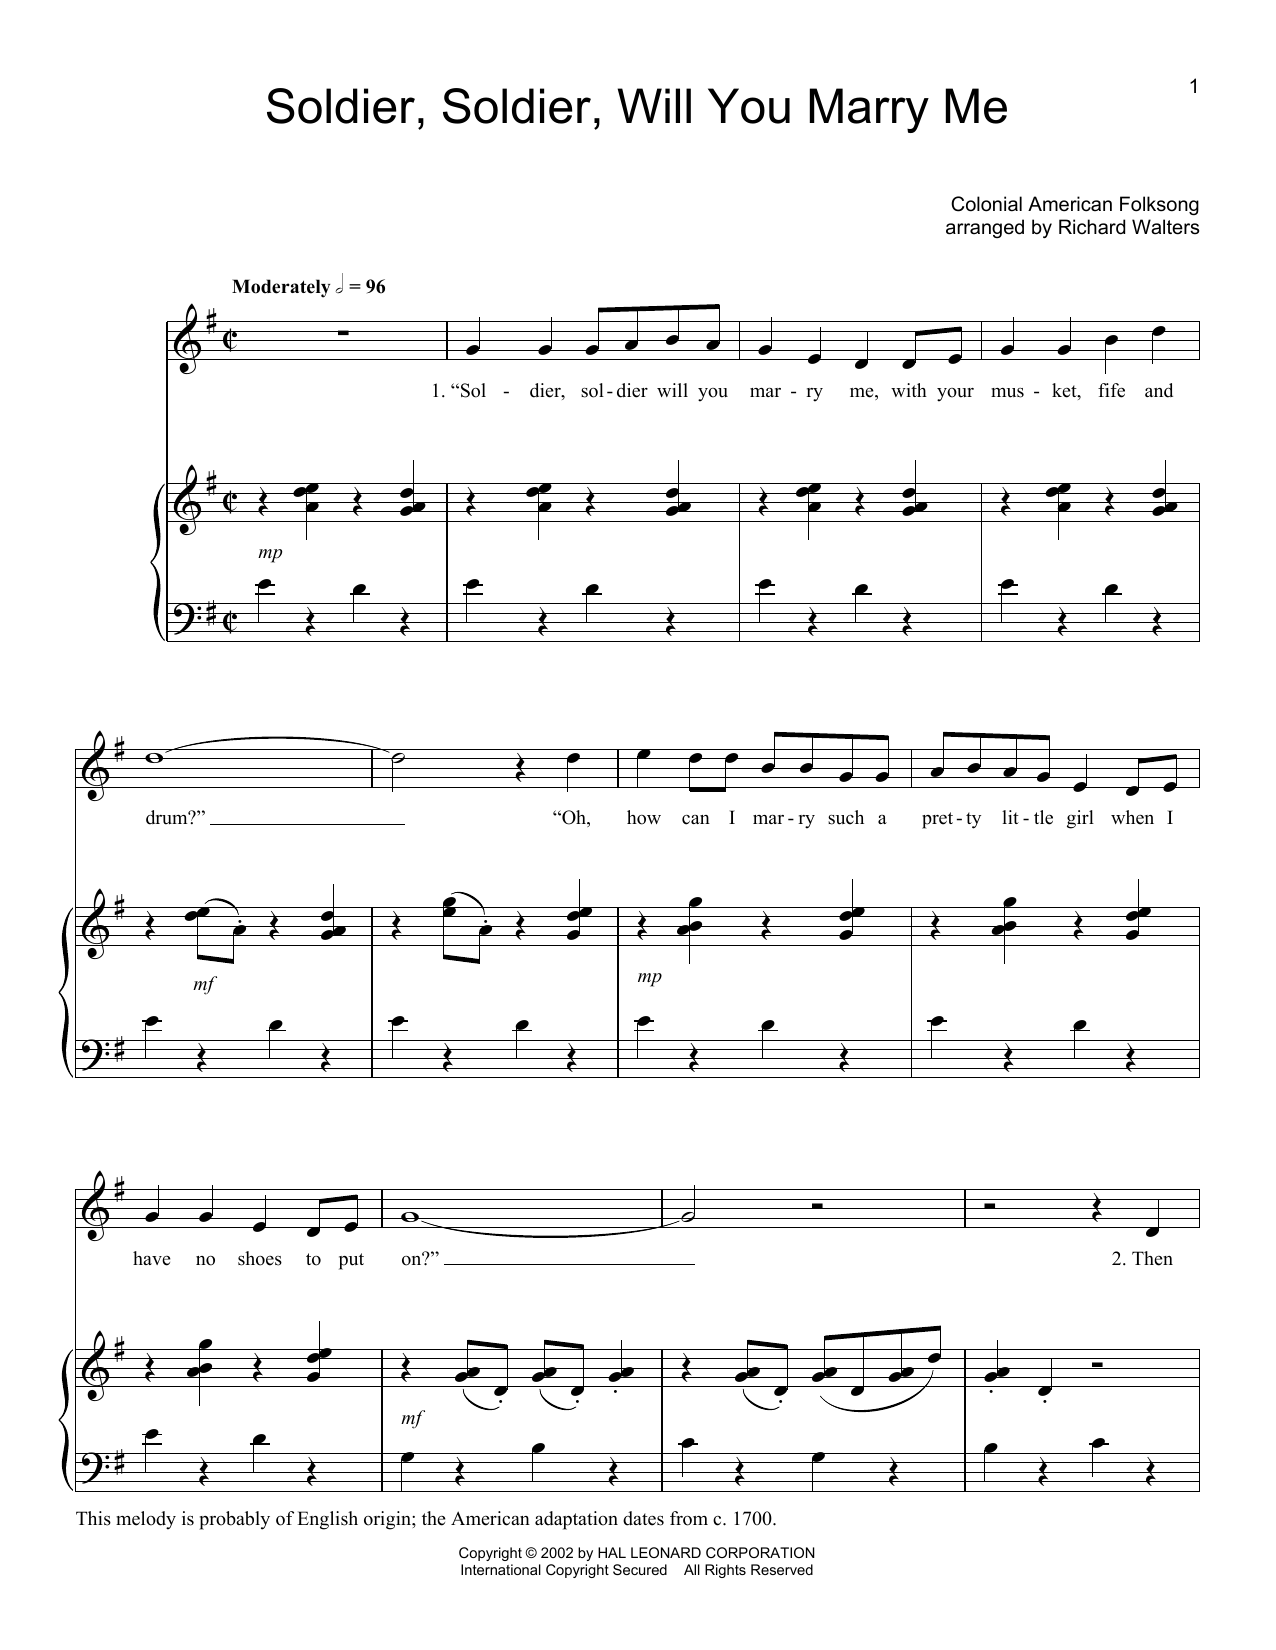 Folk Song Soldier, Soldier Will You Marry Me sheet music notes and chords. Download Printable PDF.